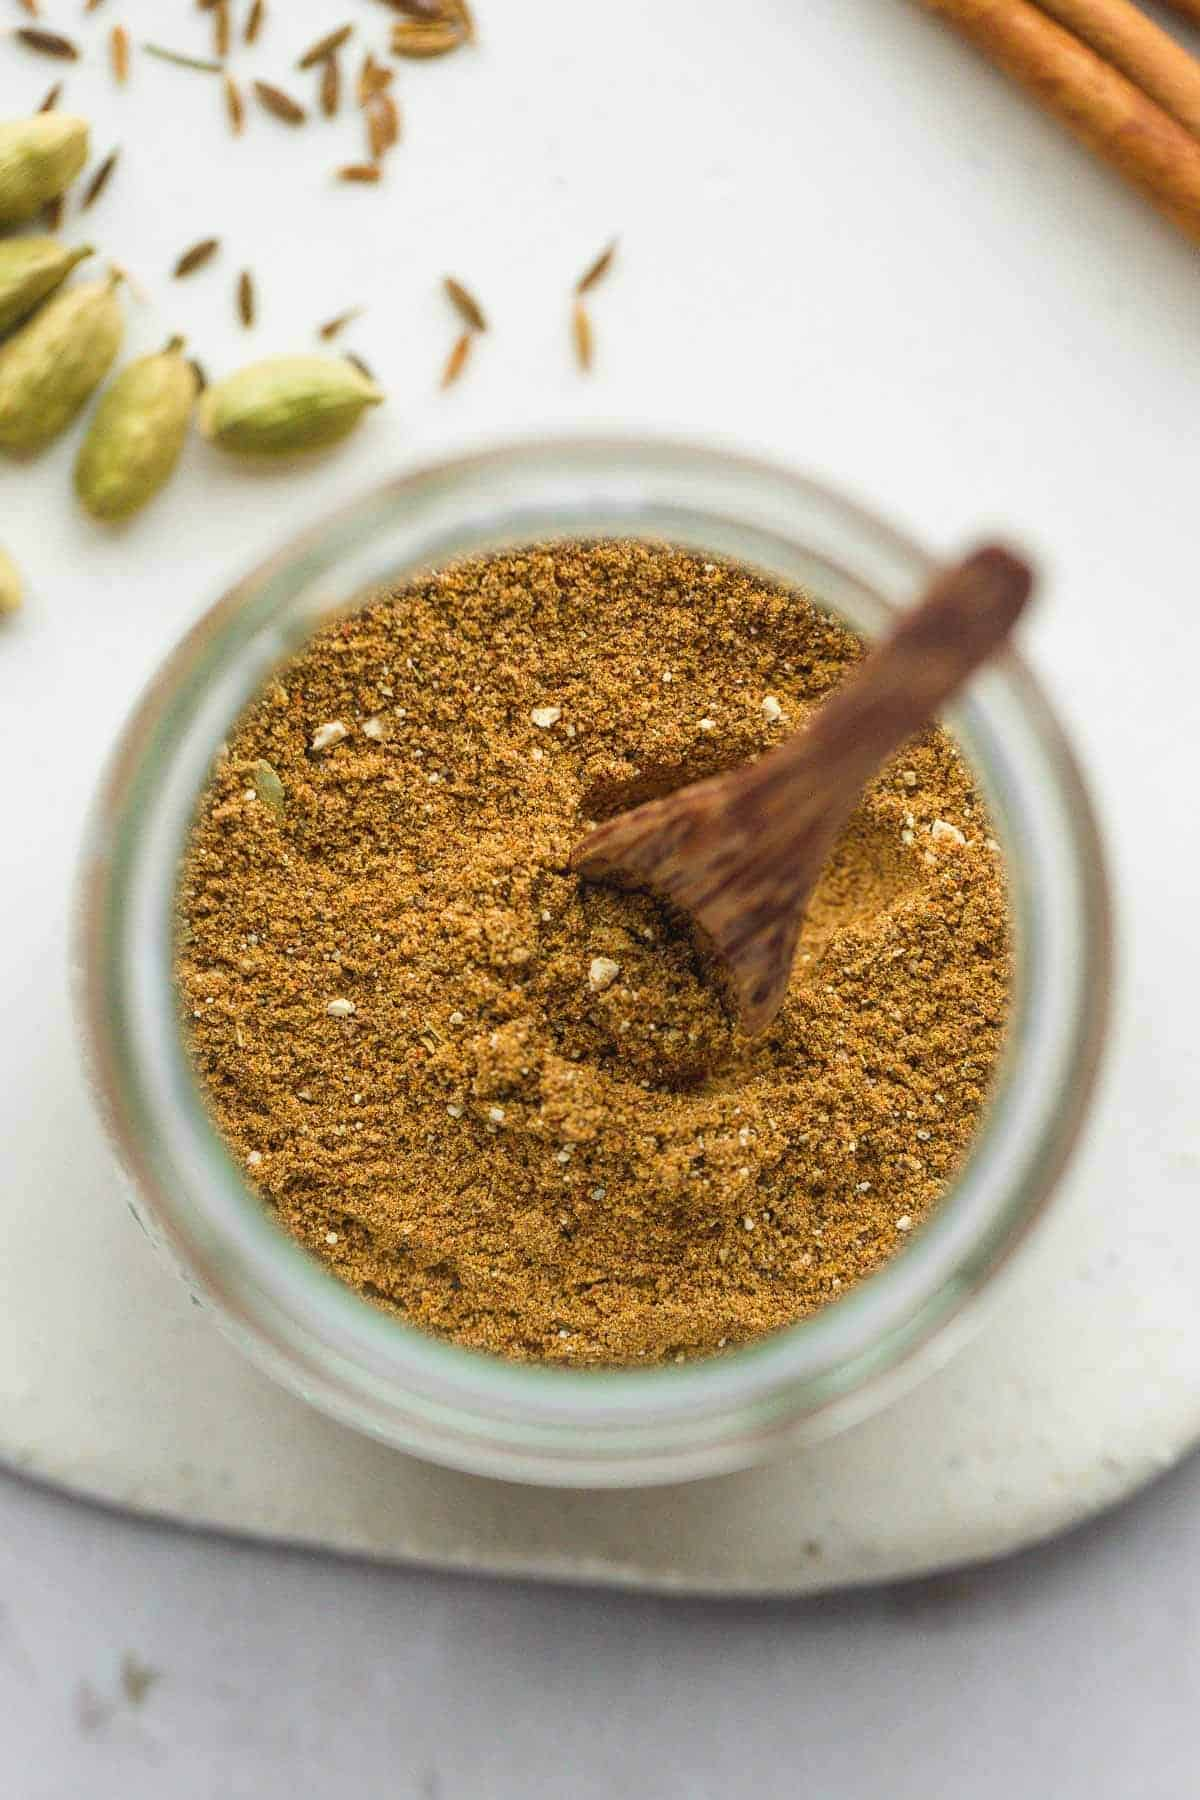 A jar of shawarma seasoning, top view, with a little wooden spoon